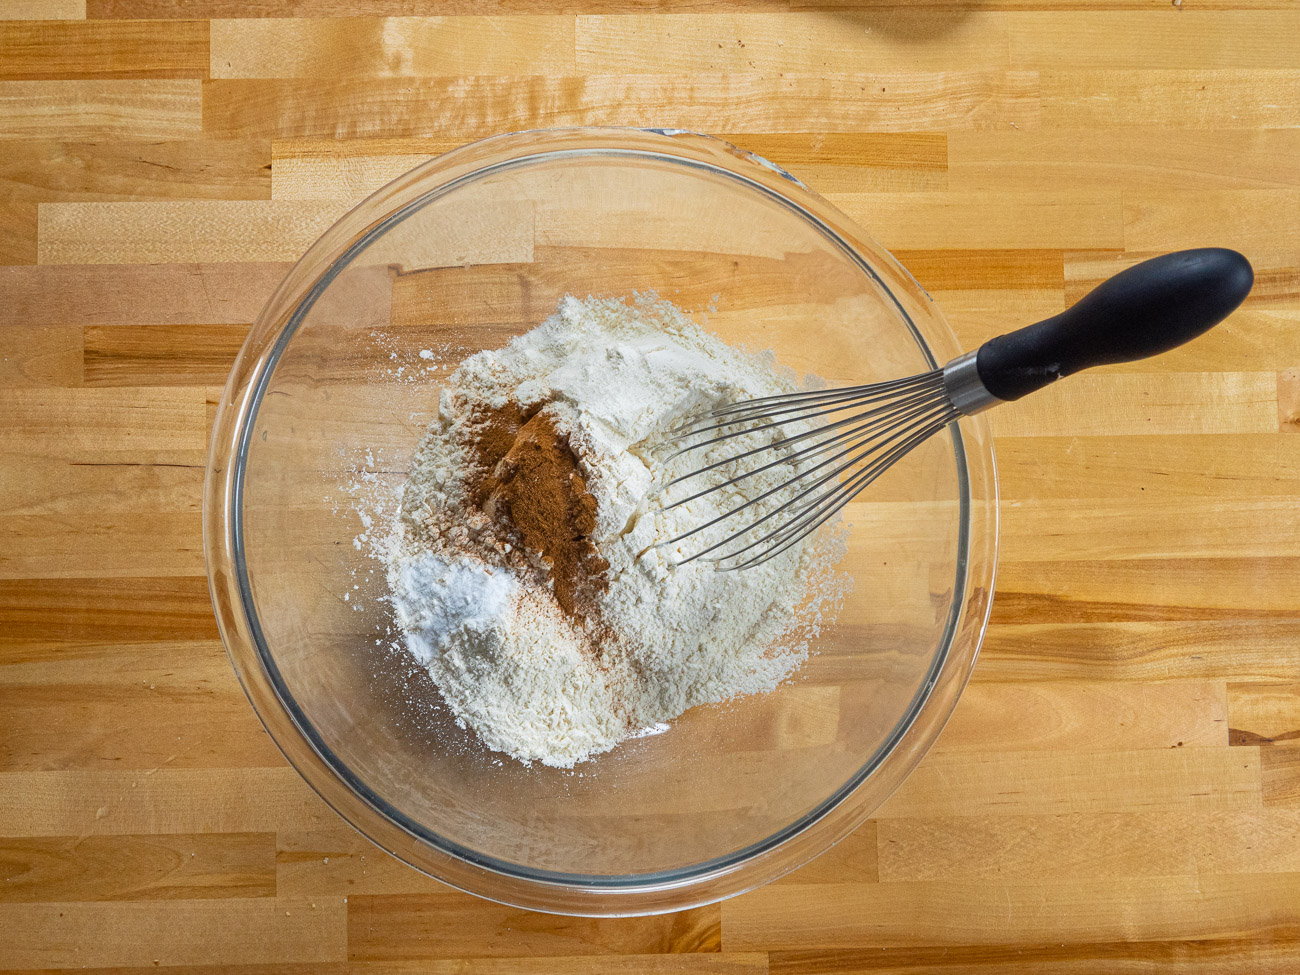 Mix flour, salt, cinnamon, and baking soda in a large bowl.